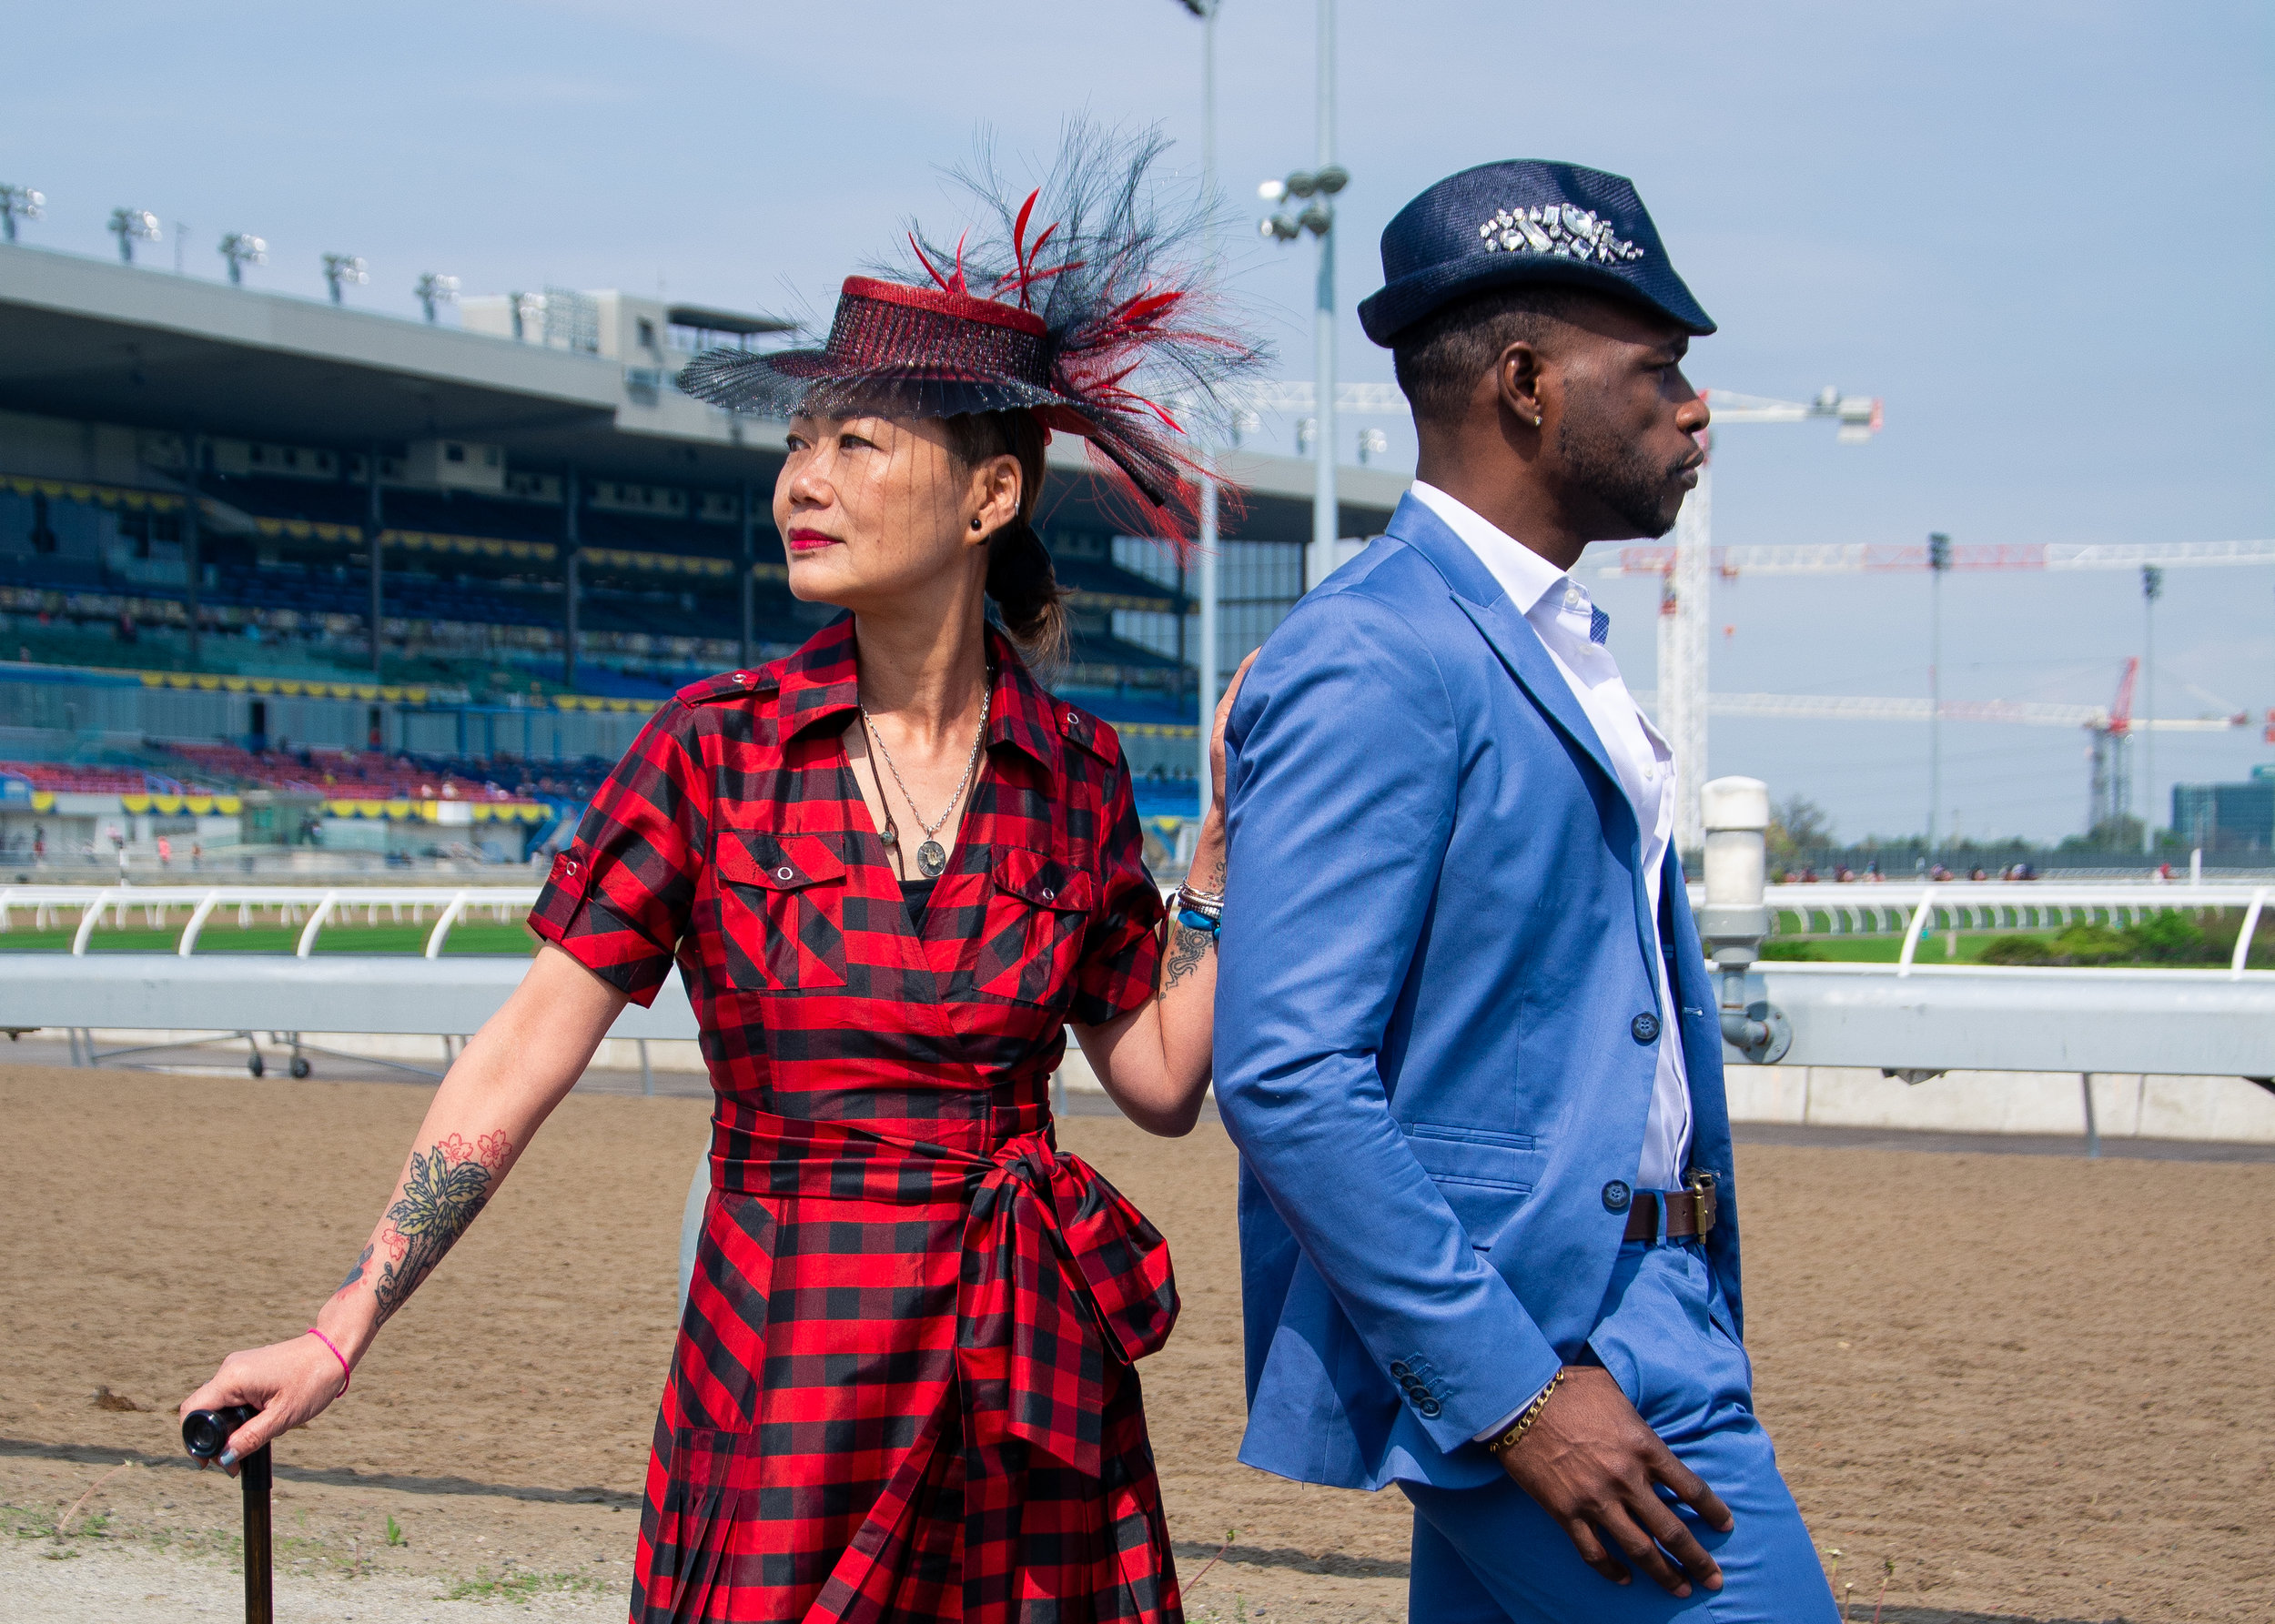 Jay Cheng from Jaycow Millinery for Greenwood Stakes by Jesús Maza_06.jpg